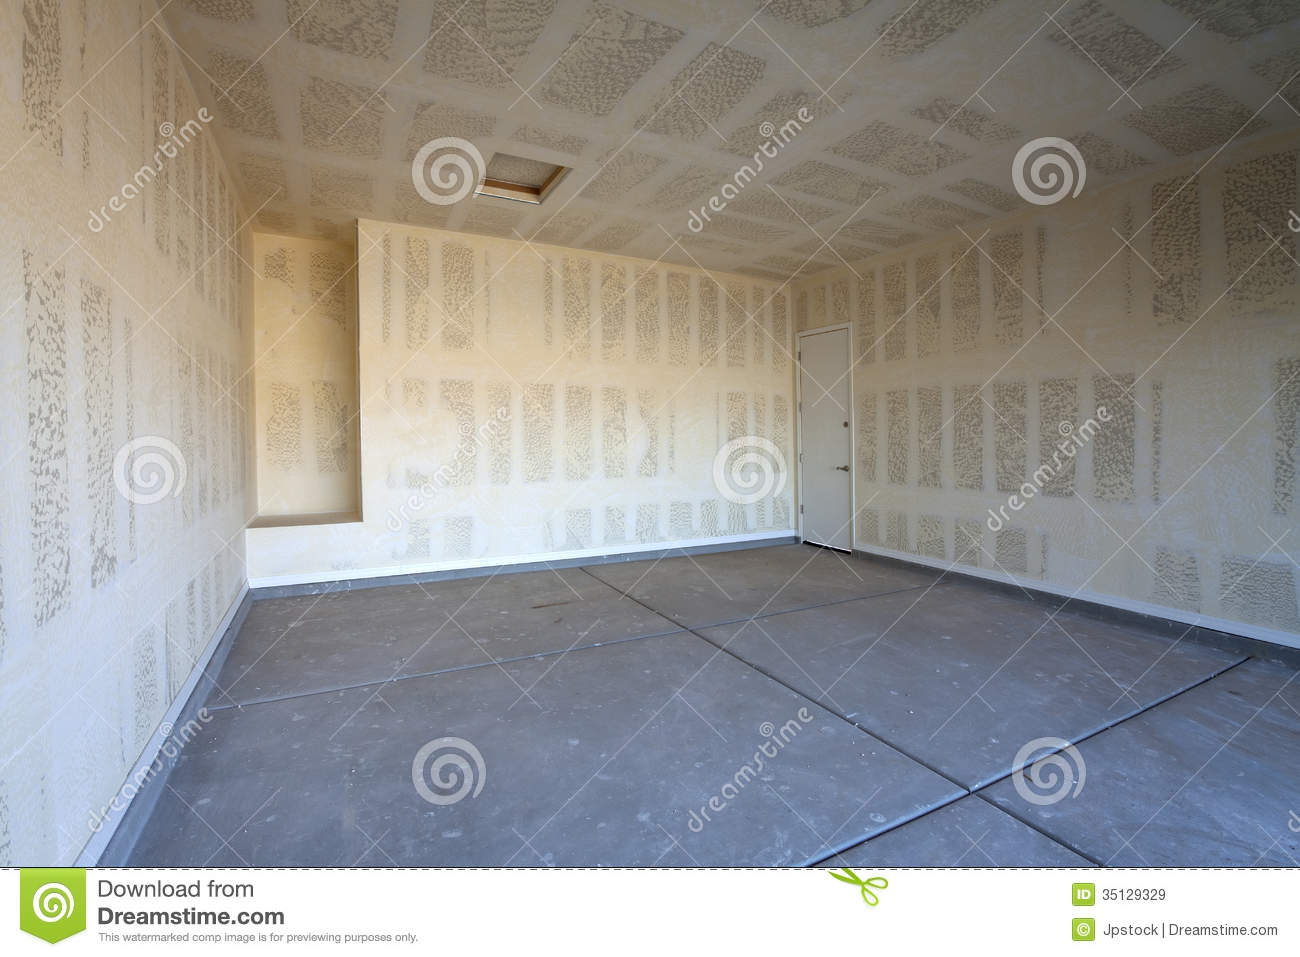 Drywall Construction Of A Garage Royalty Free Stock Images